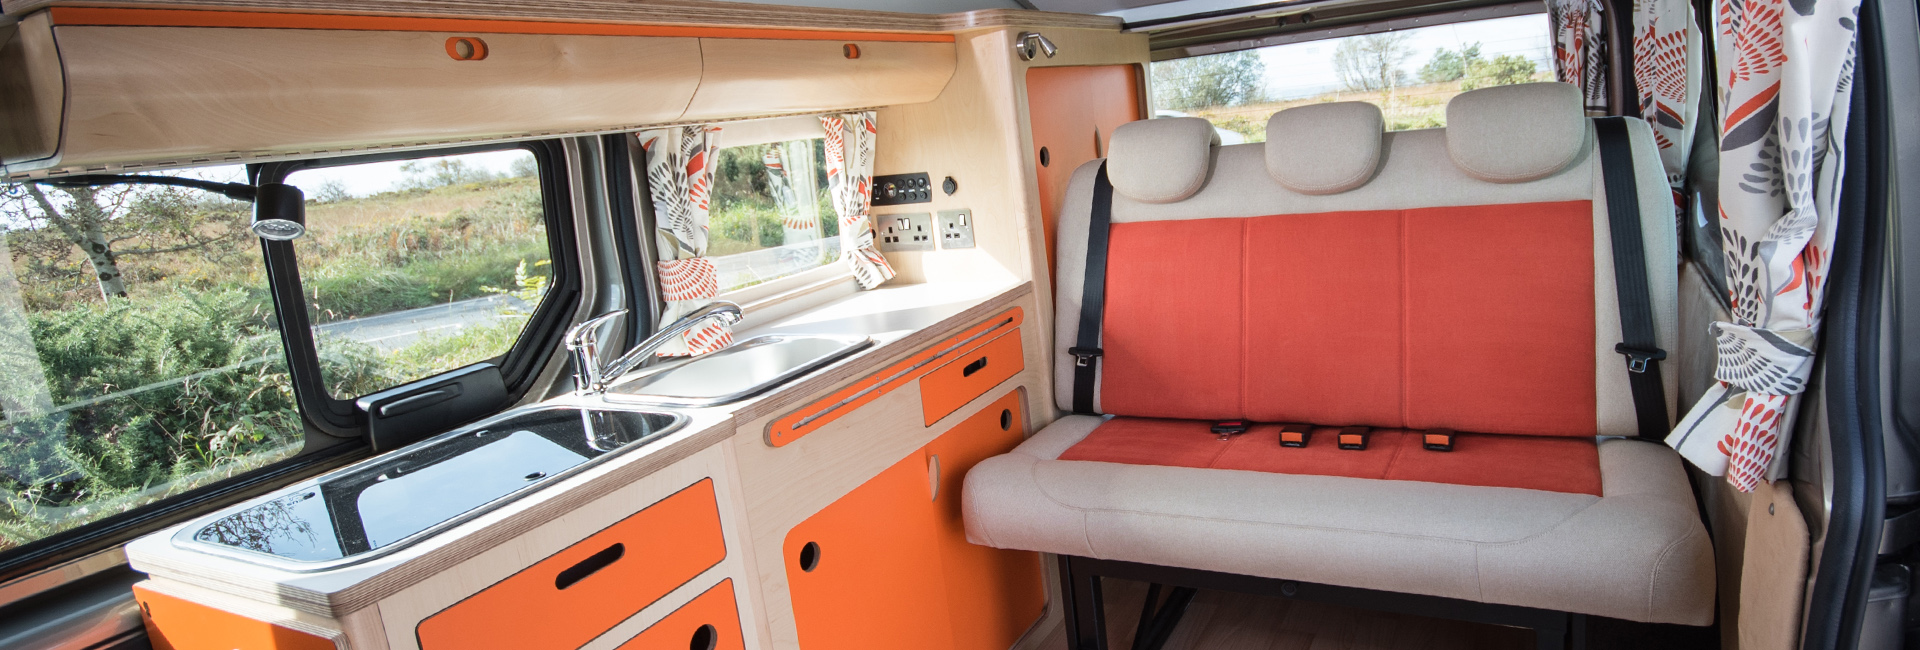 bright fresh campervan eco plywood conversion in orange and cream with rock and roll bed, built in fridge, sink, gas hob, clever storage parked in nature